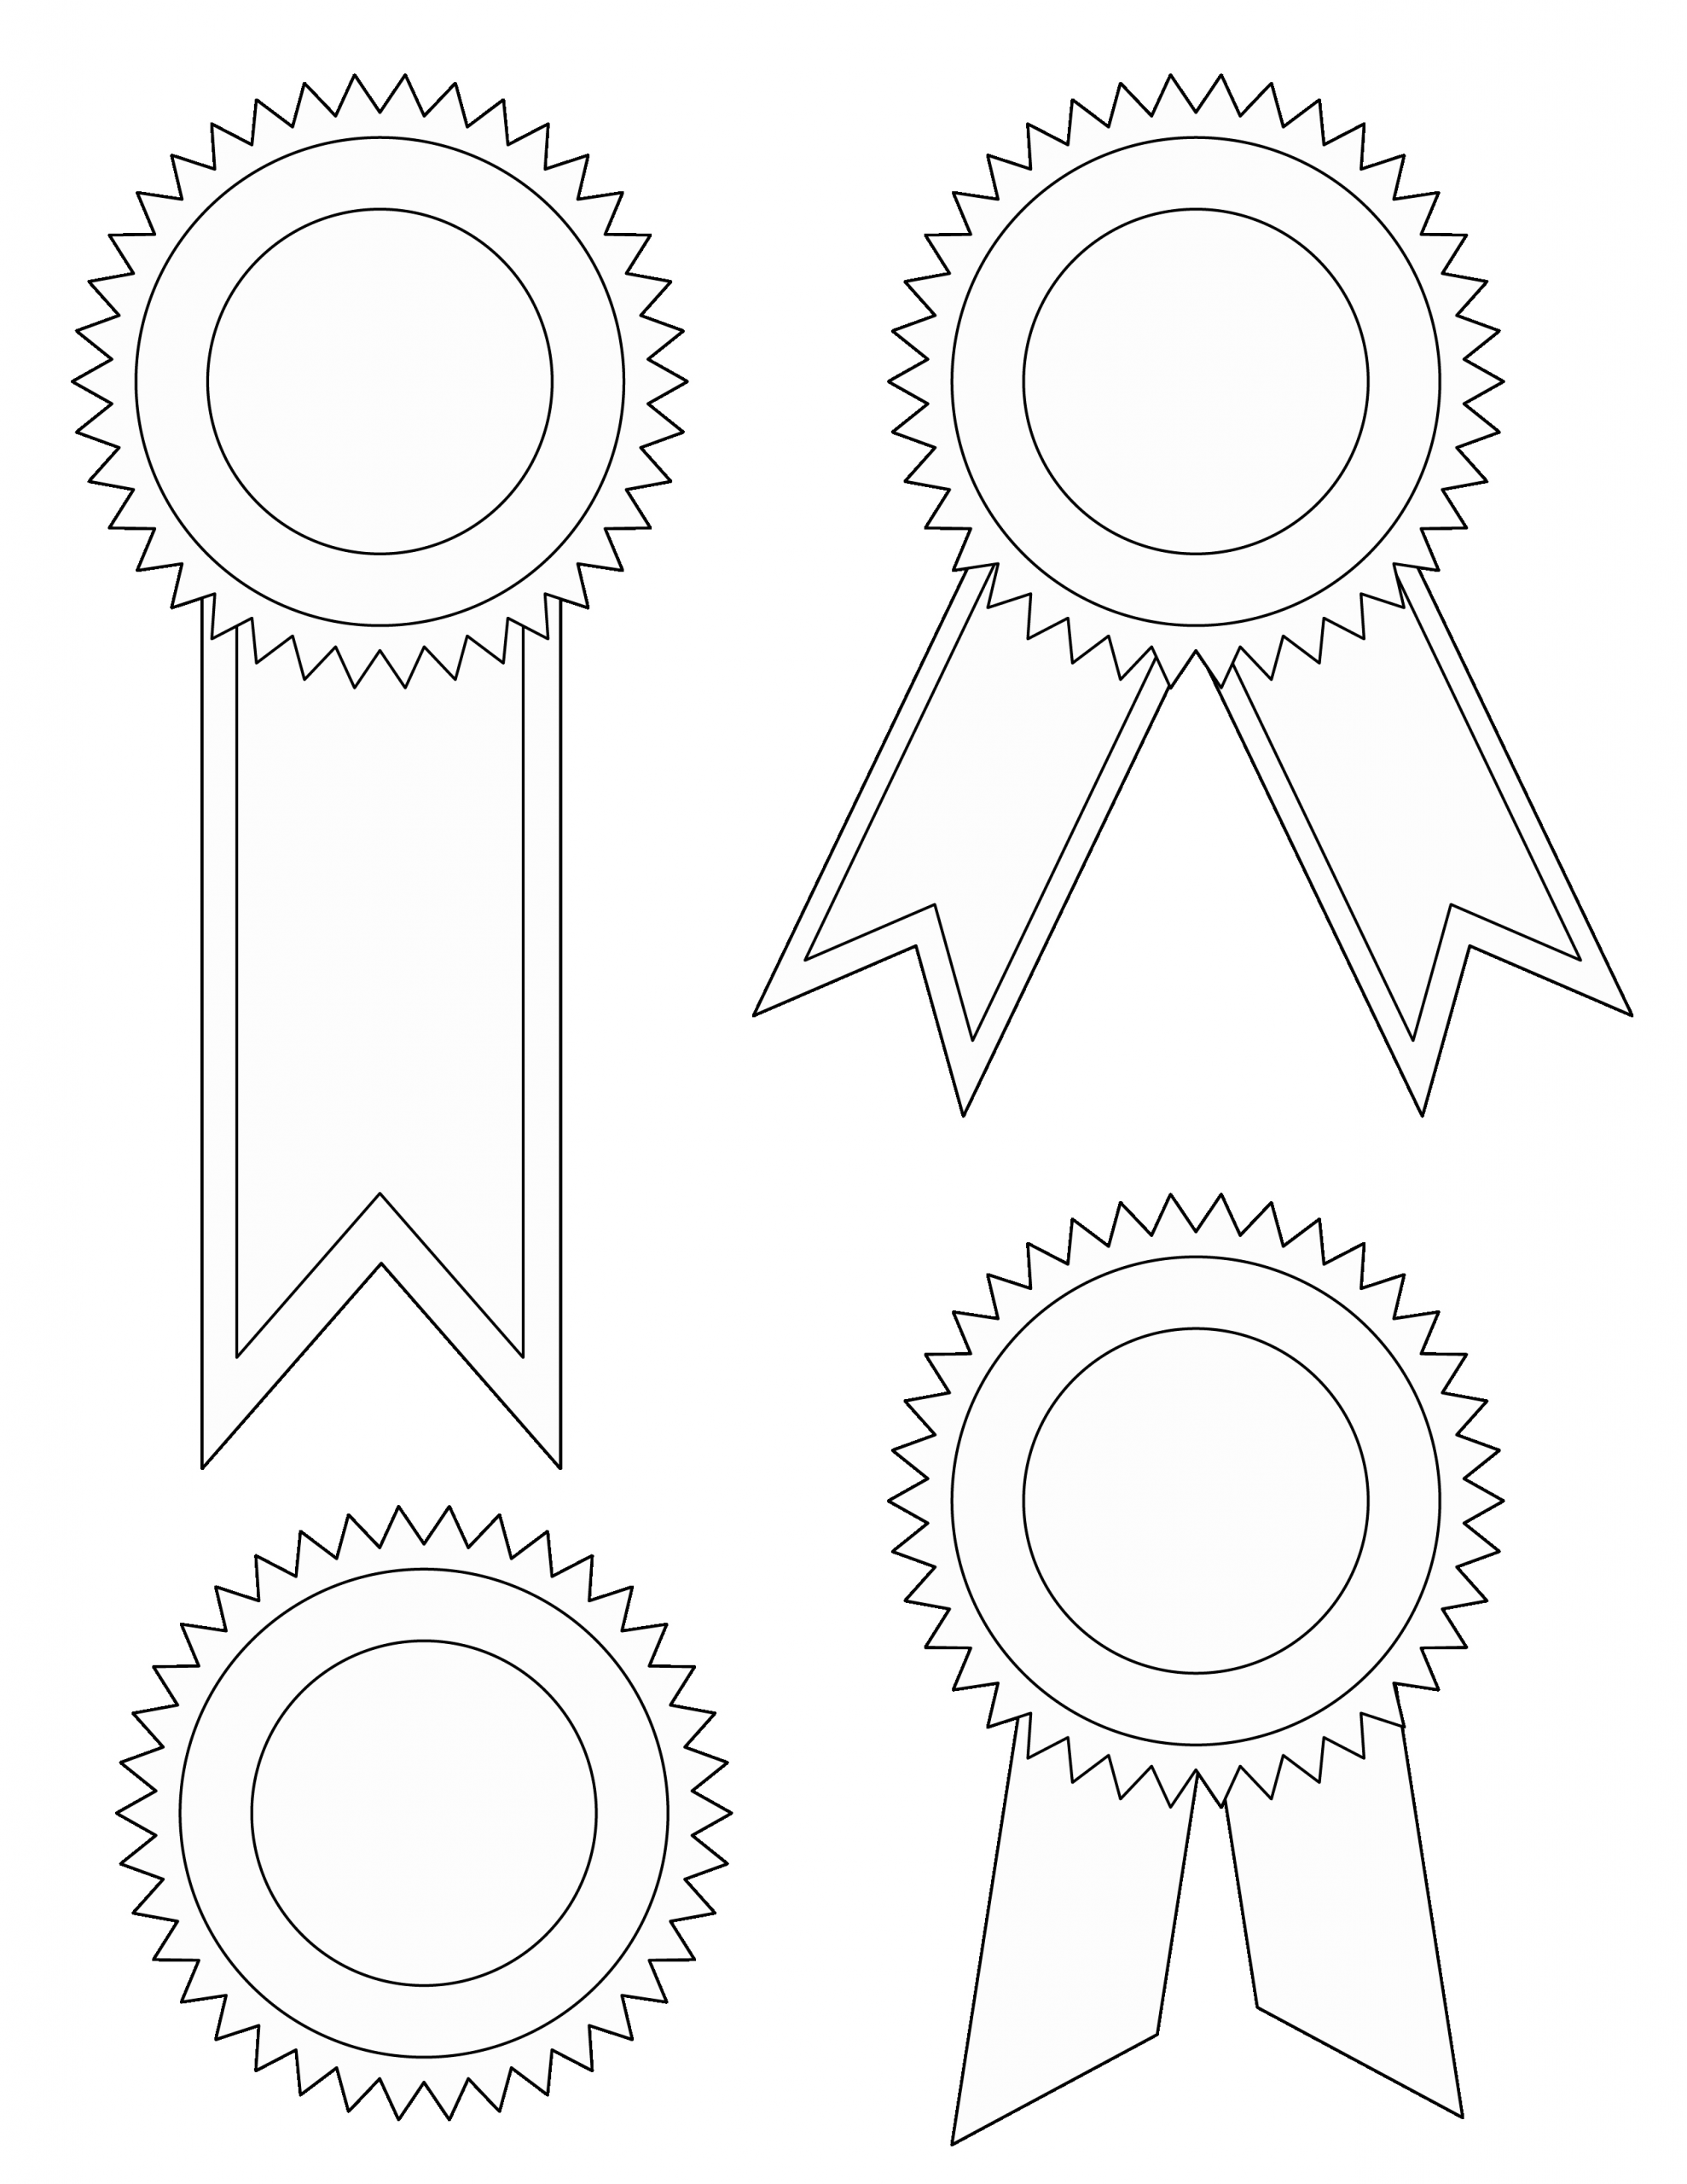 Award Ribbon Template Printable Awesome Printable Award Ribbons